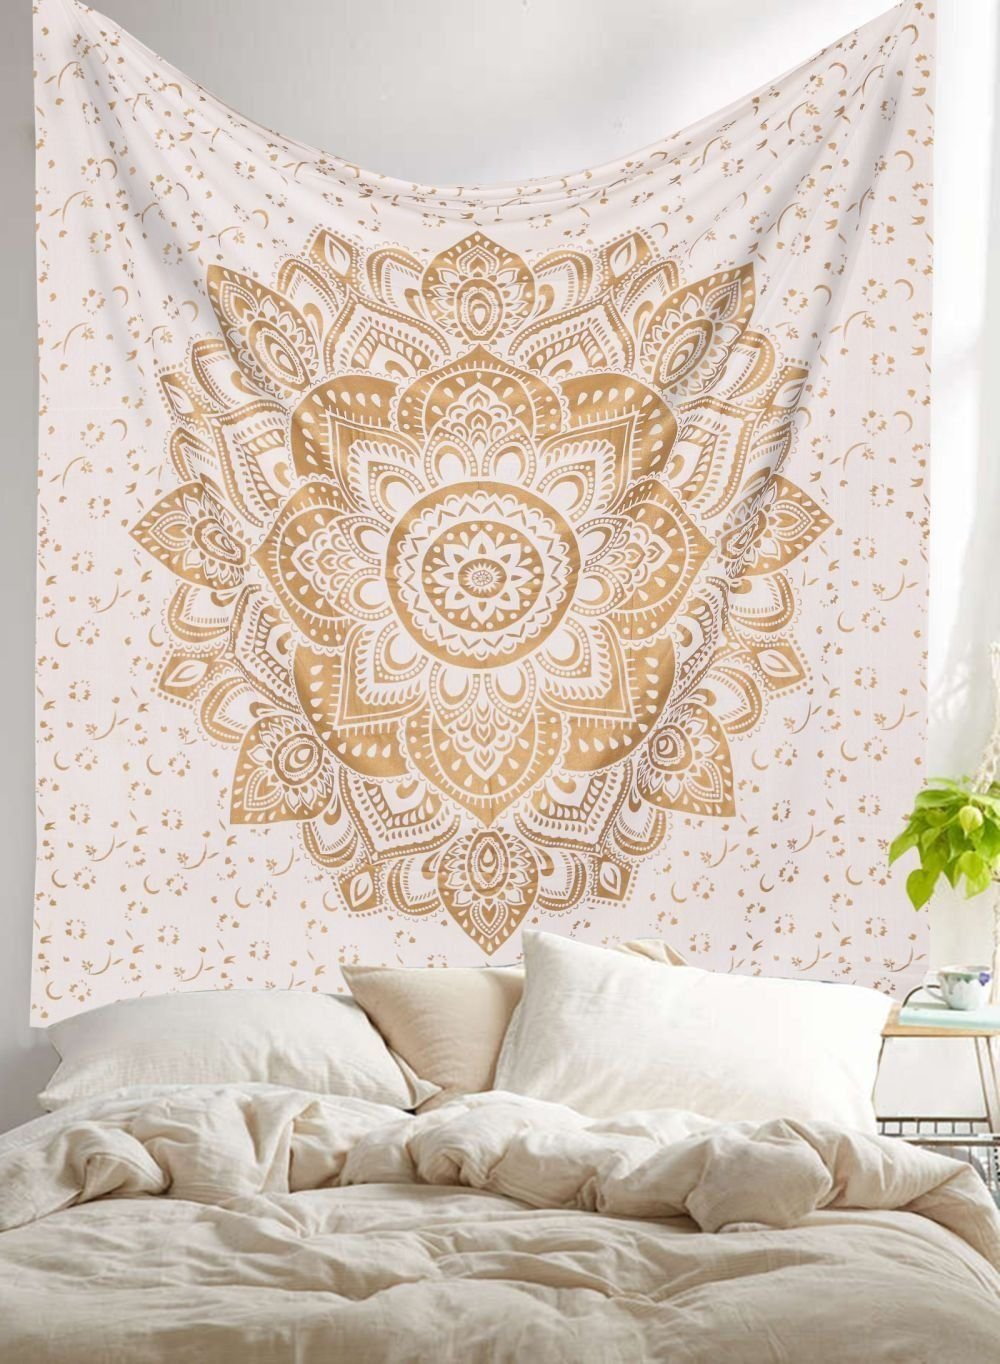 Queen Mandala Ombre Tapestry Indian Wall Hanging Bohemian Hippie Bedspread Throw